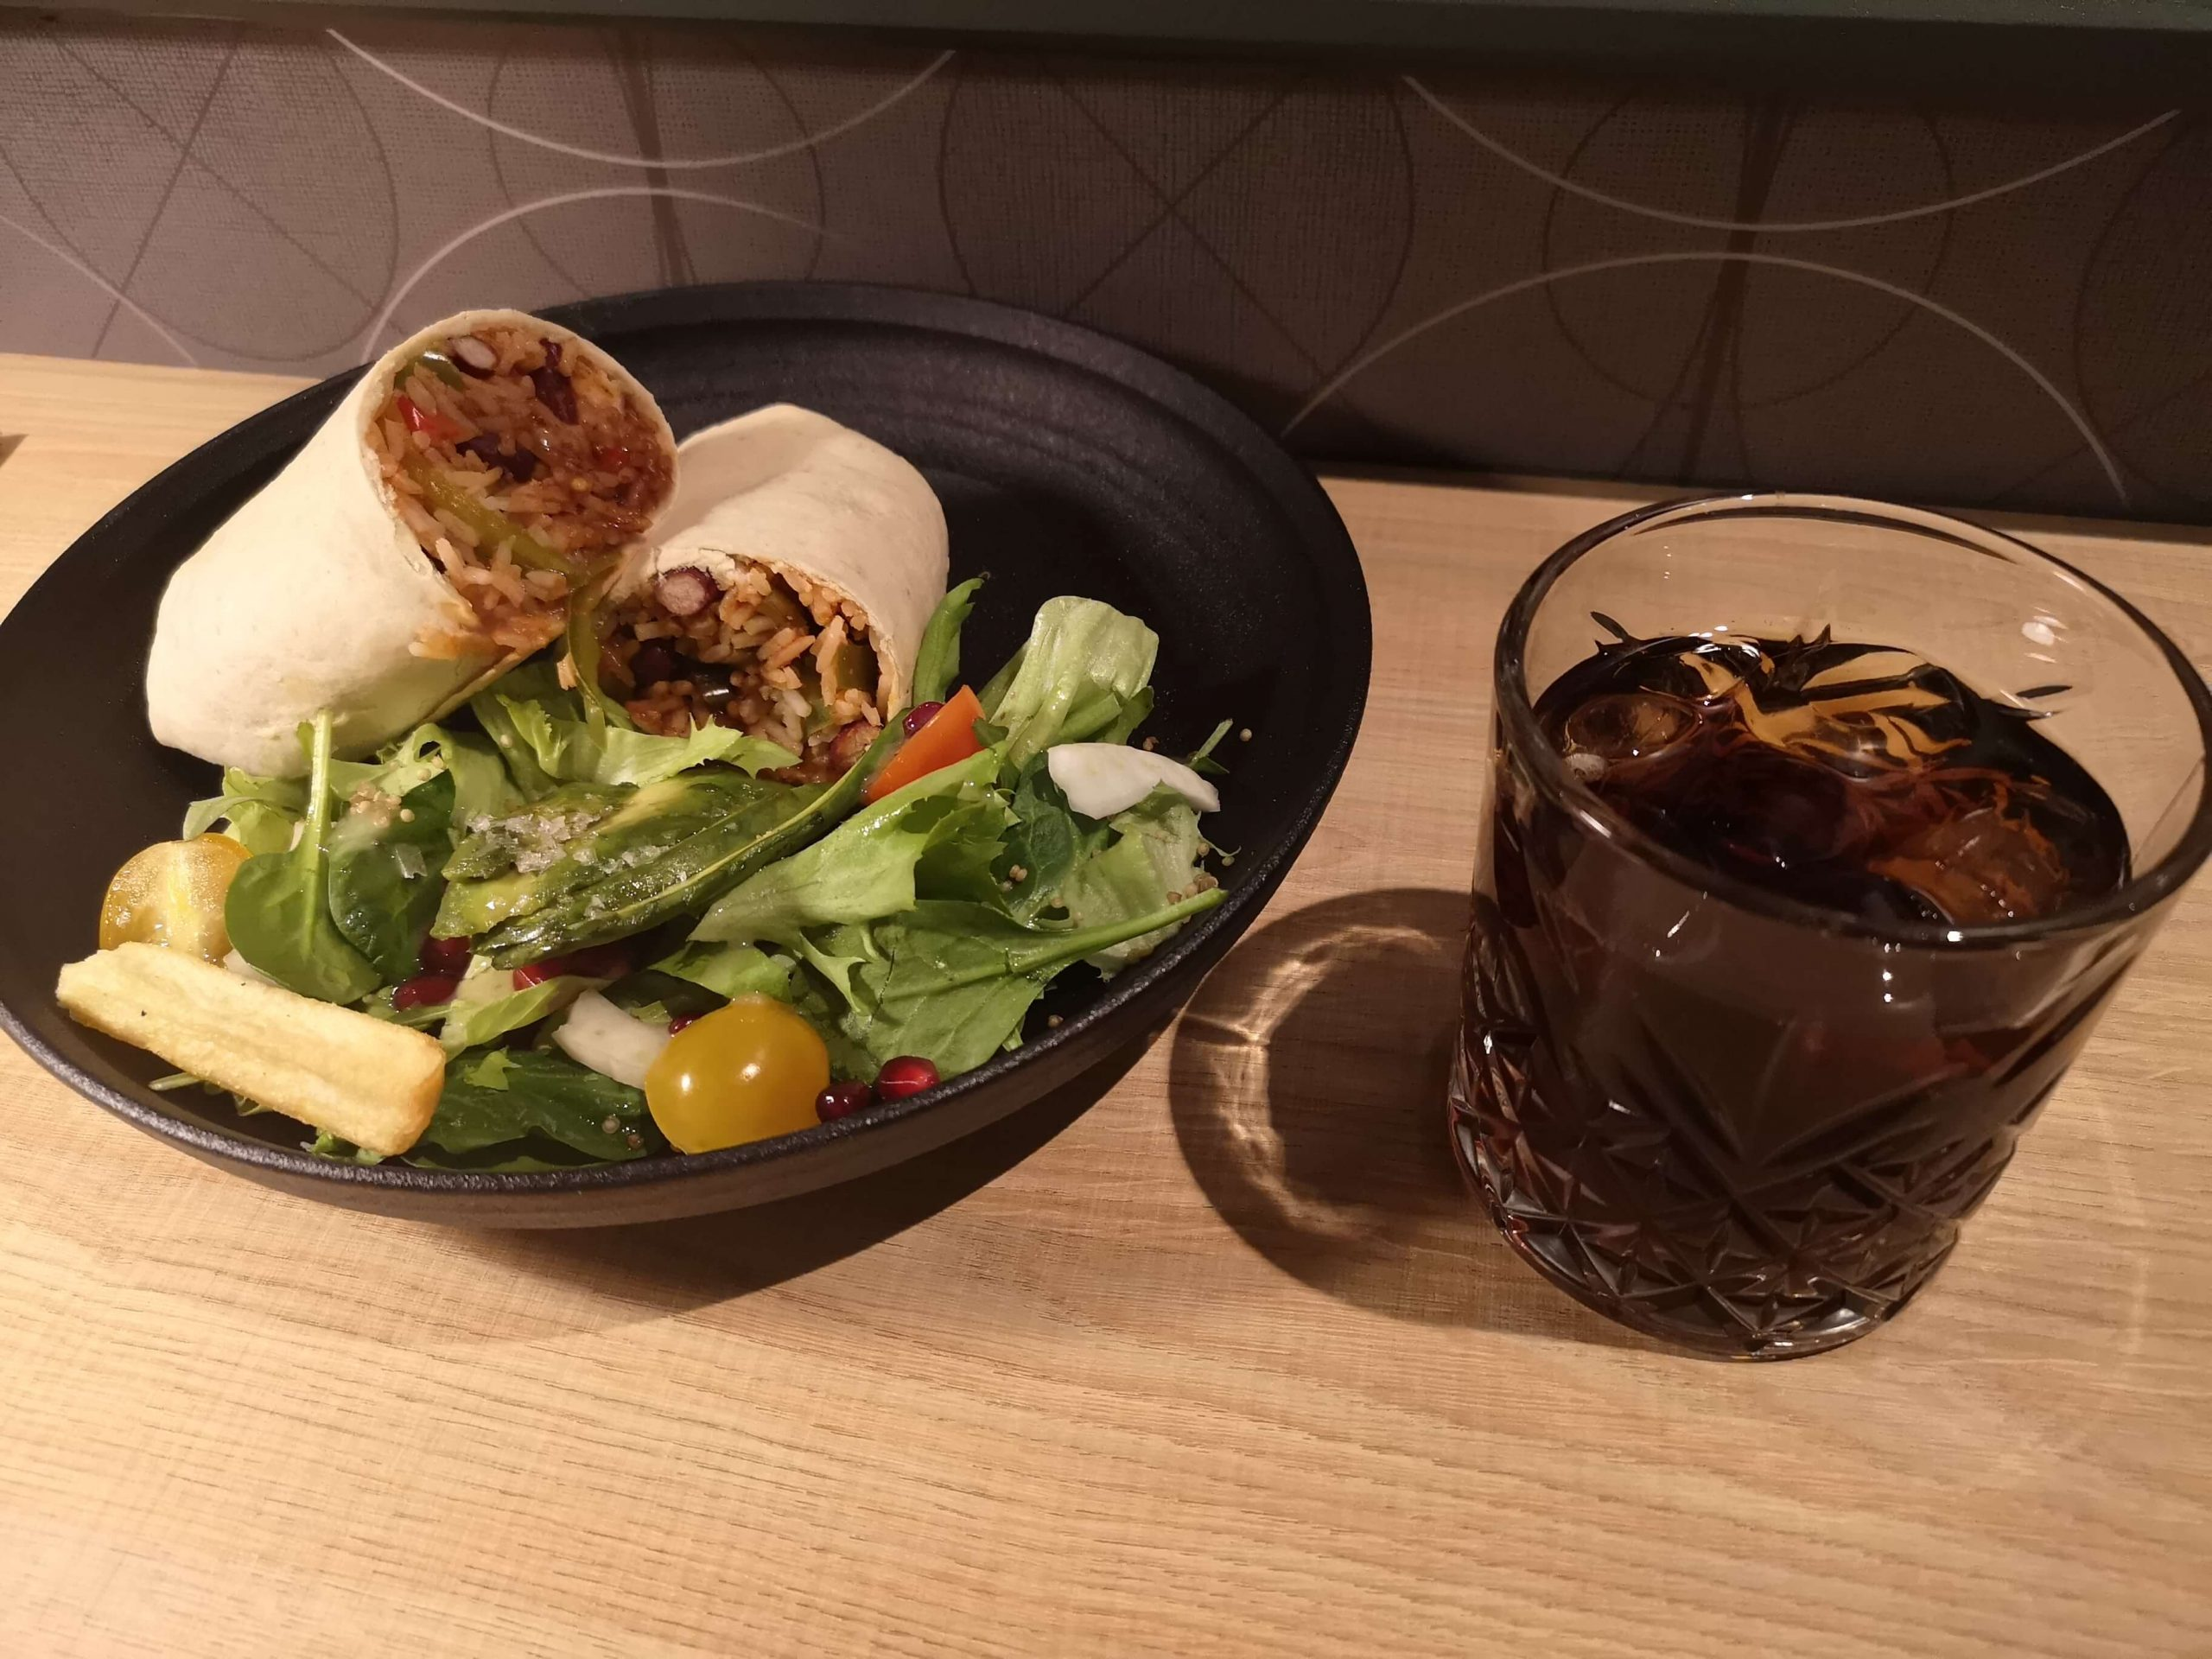 A vegan burrito at a glass of coke at Aloft Aberdeen TECA.